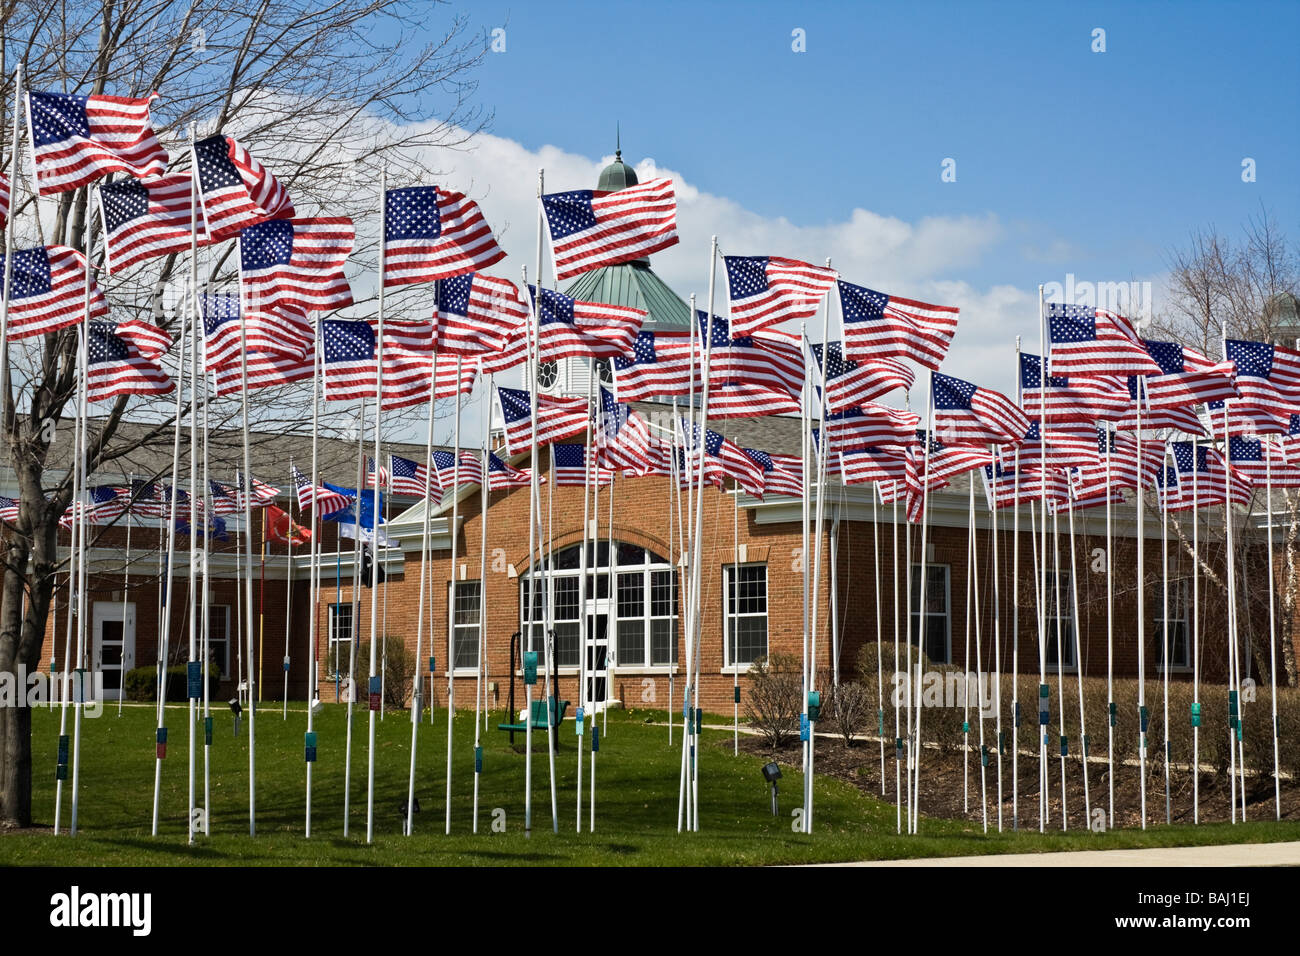 500 flags seen in Estlake Ohio - Stock Image